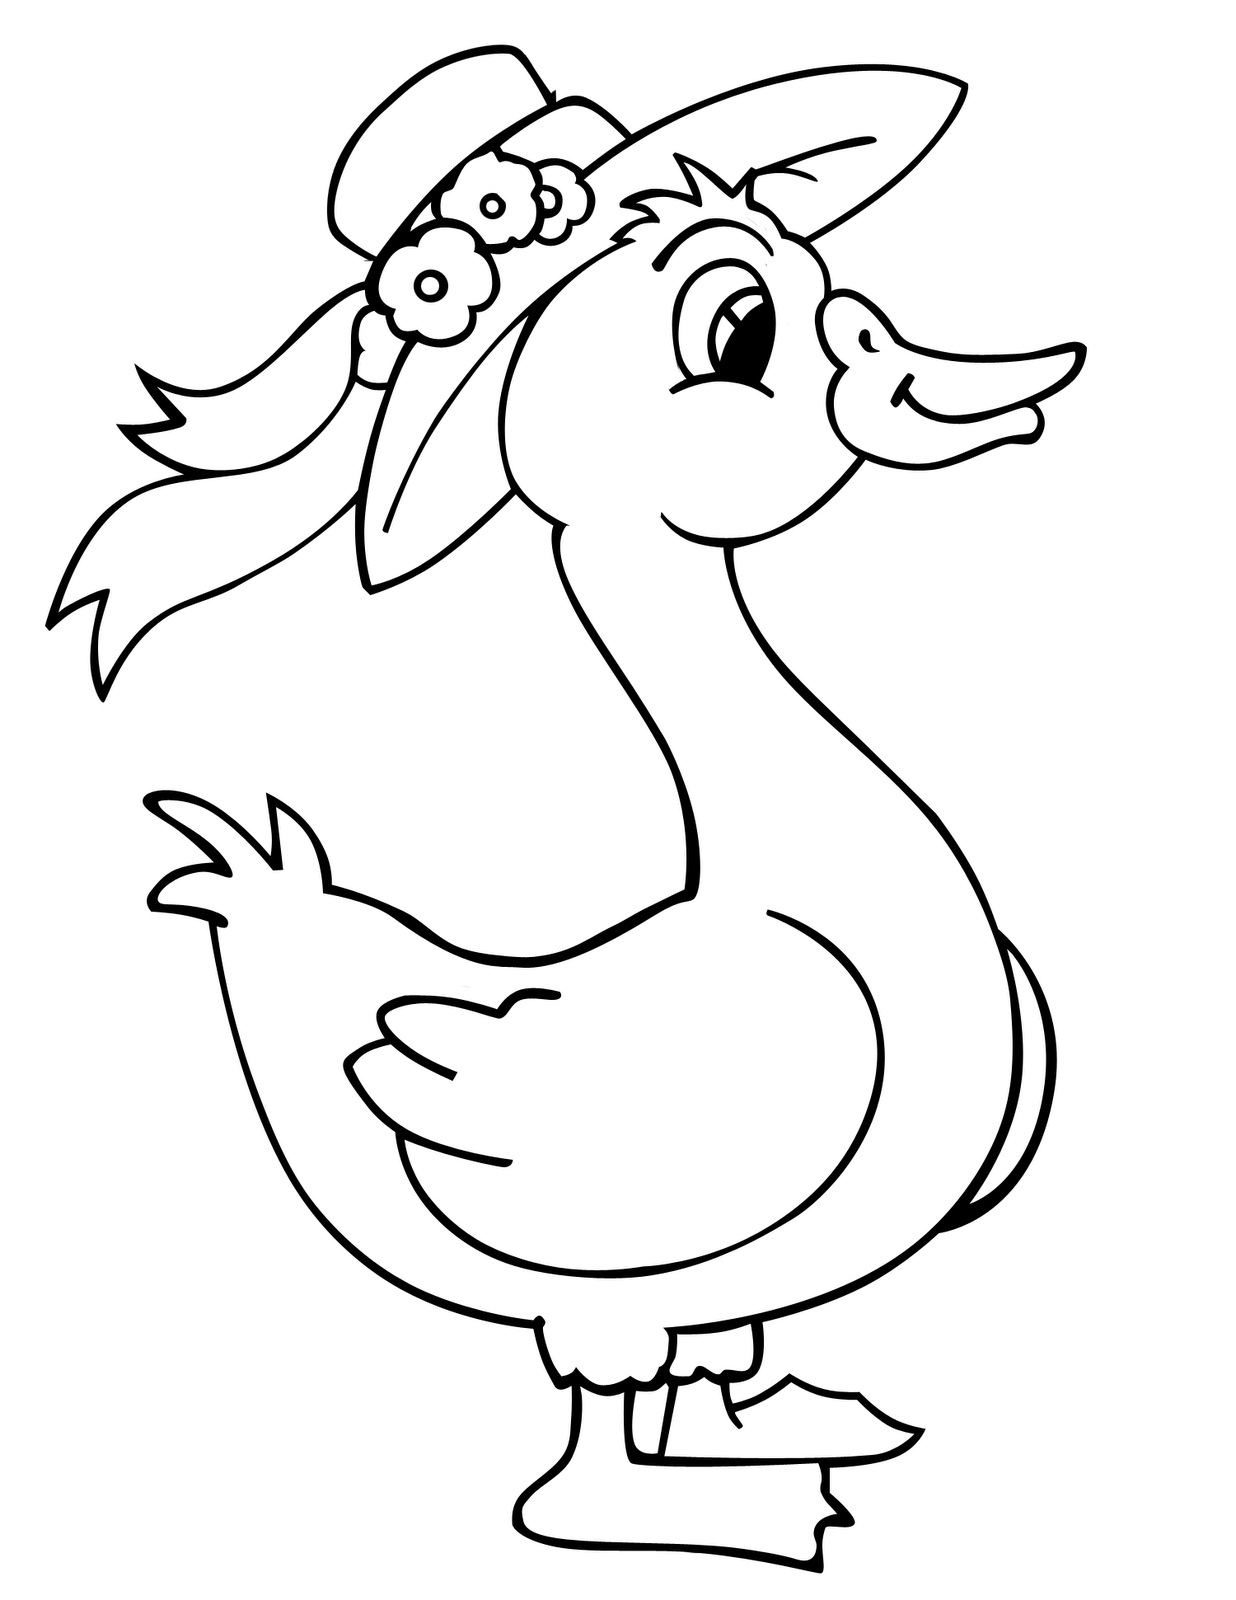 duck printable printable duck coloring pages for kids cool2bkids duck printable